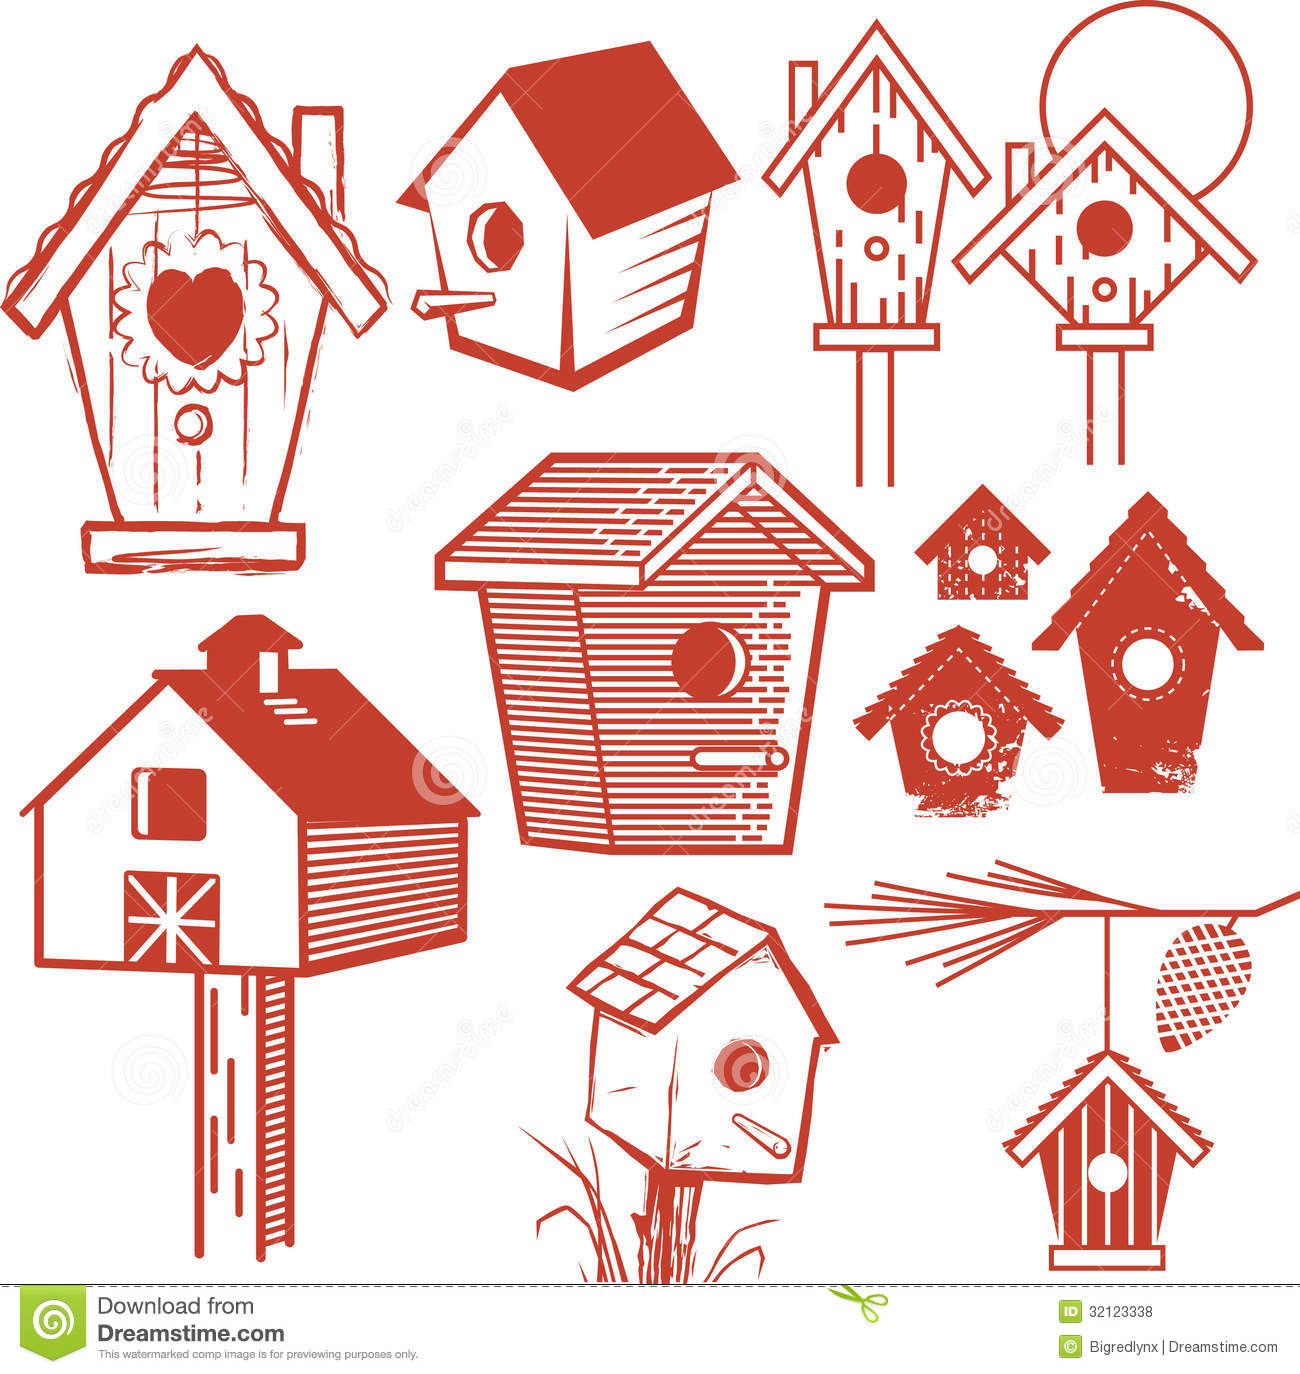 Birdhouse clipart whimsical.  collection of high